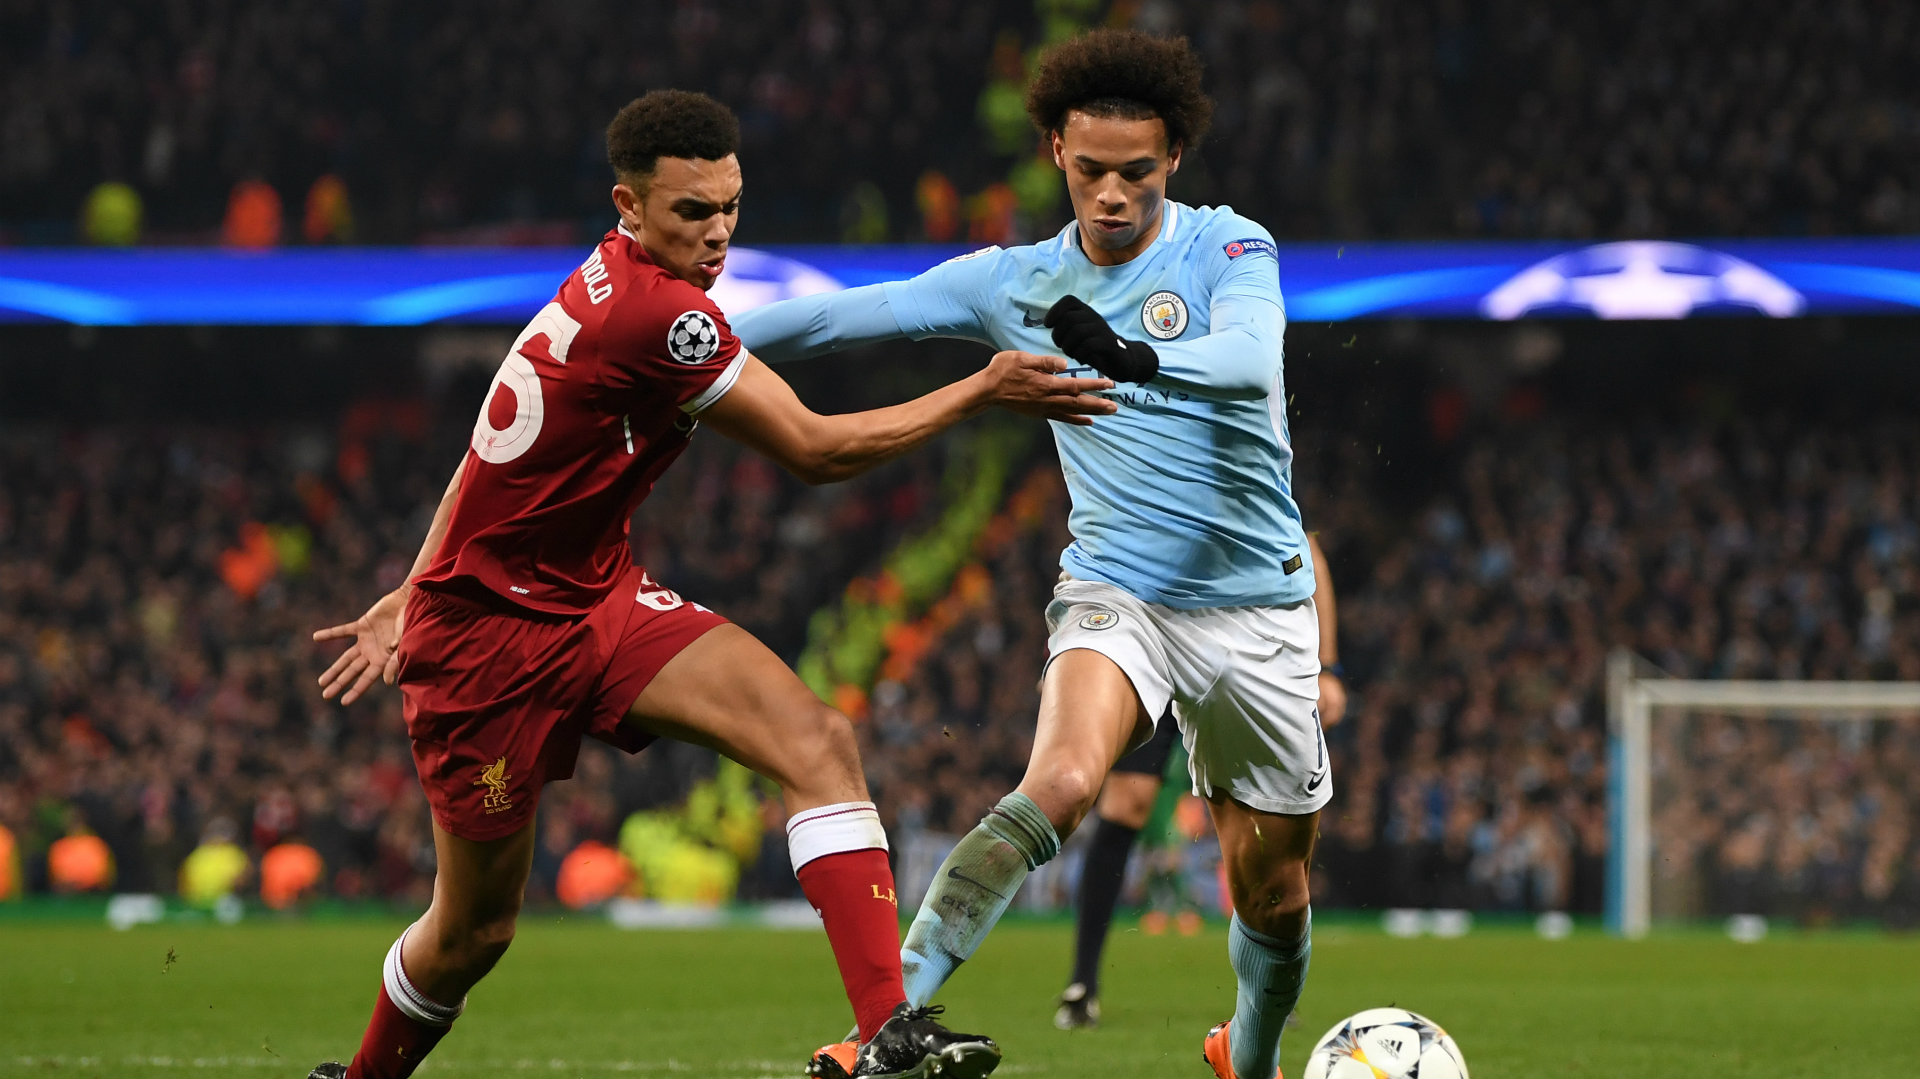 Trent Alexander-Arnold, Leroy Sane, Man City v Liverpool, Champions League, 17/18